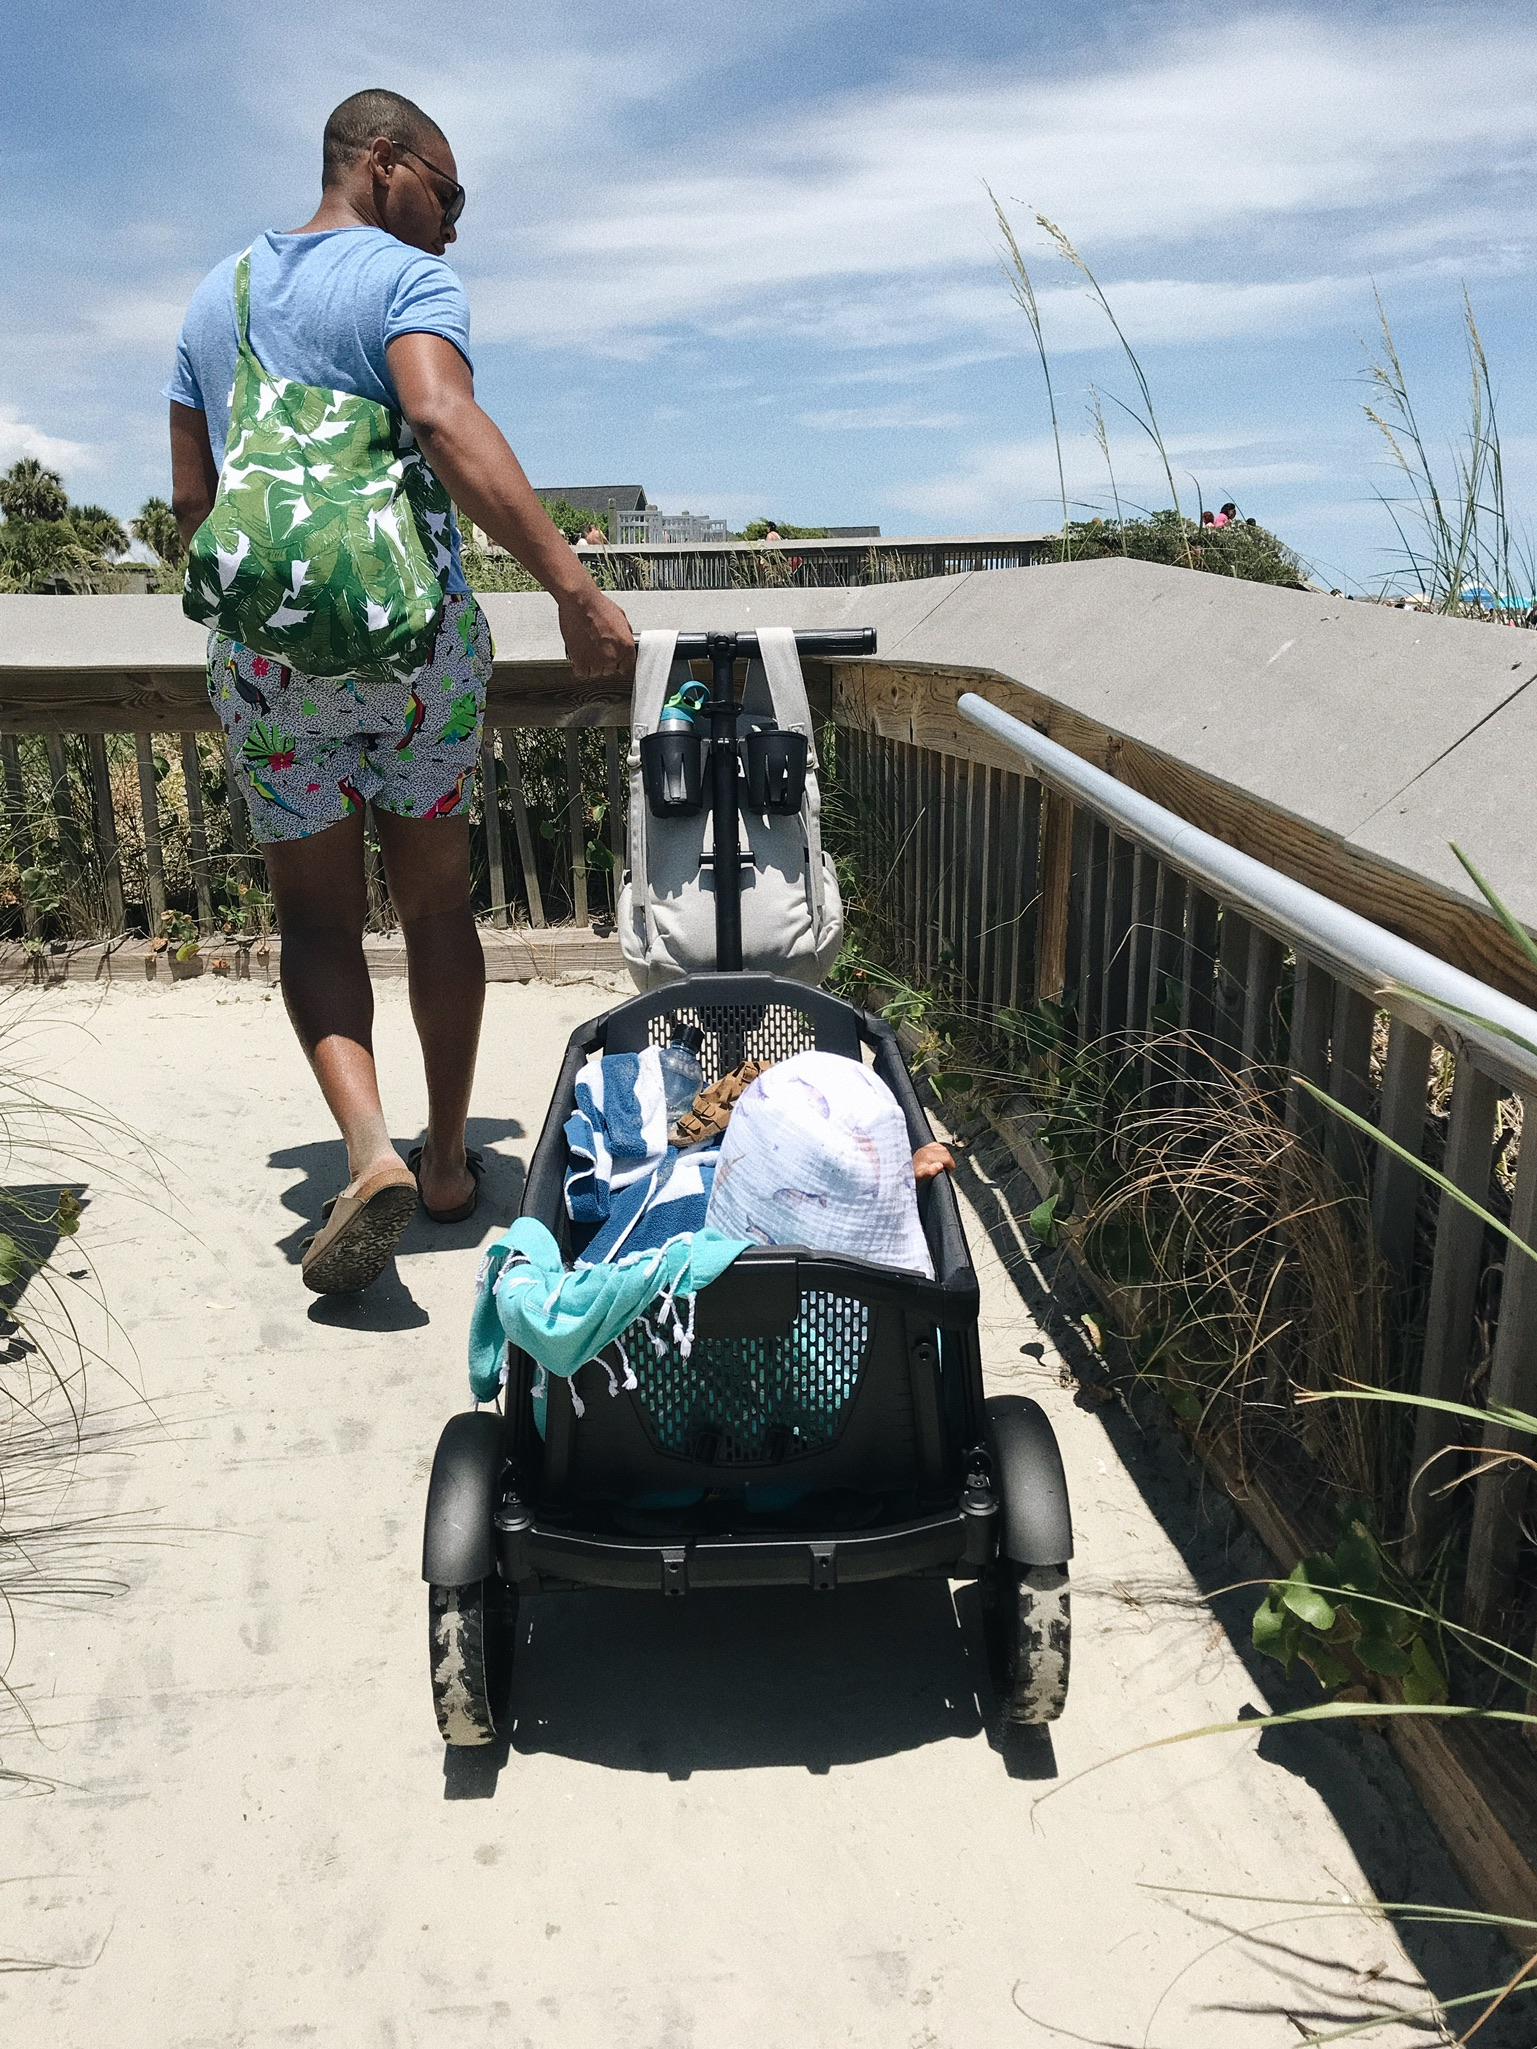 The walk back out with everything sand filled & a tired baby was MUCH easier with the wagon..